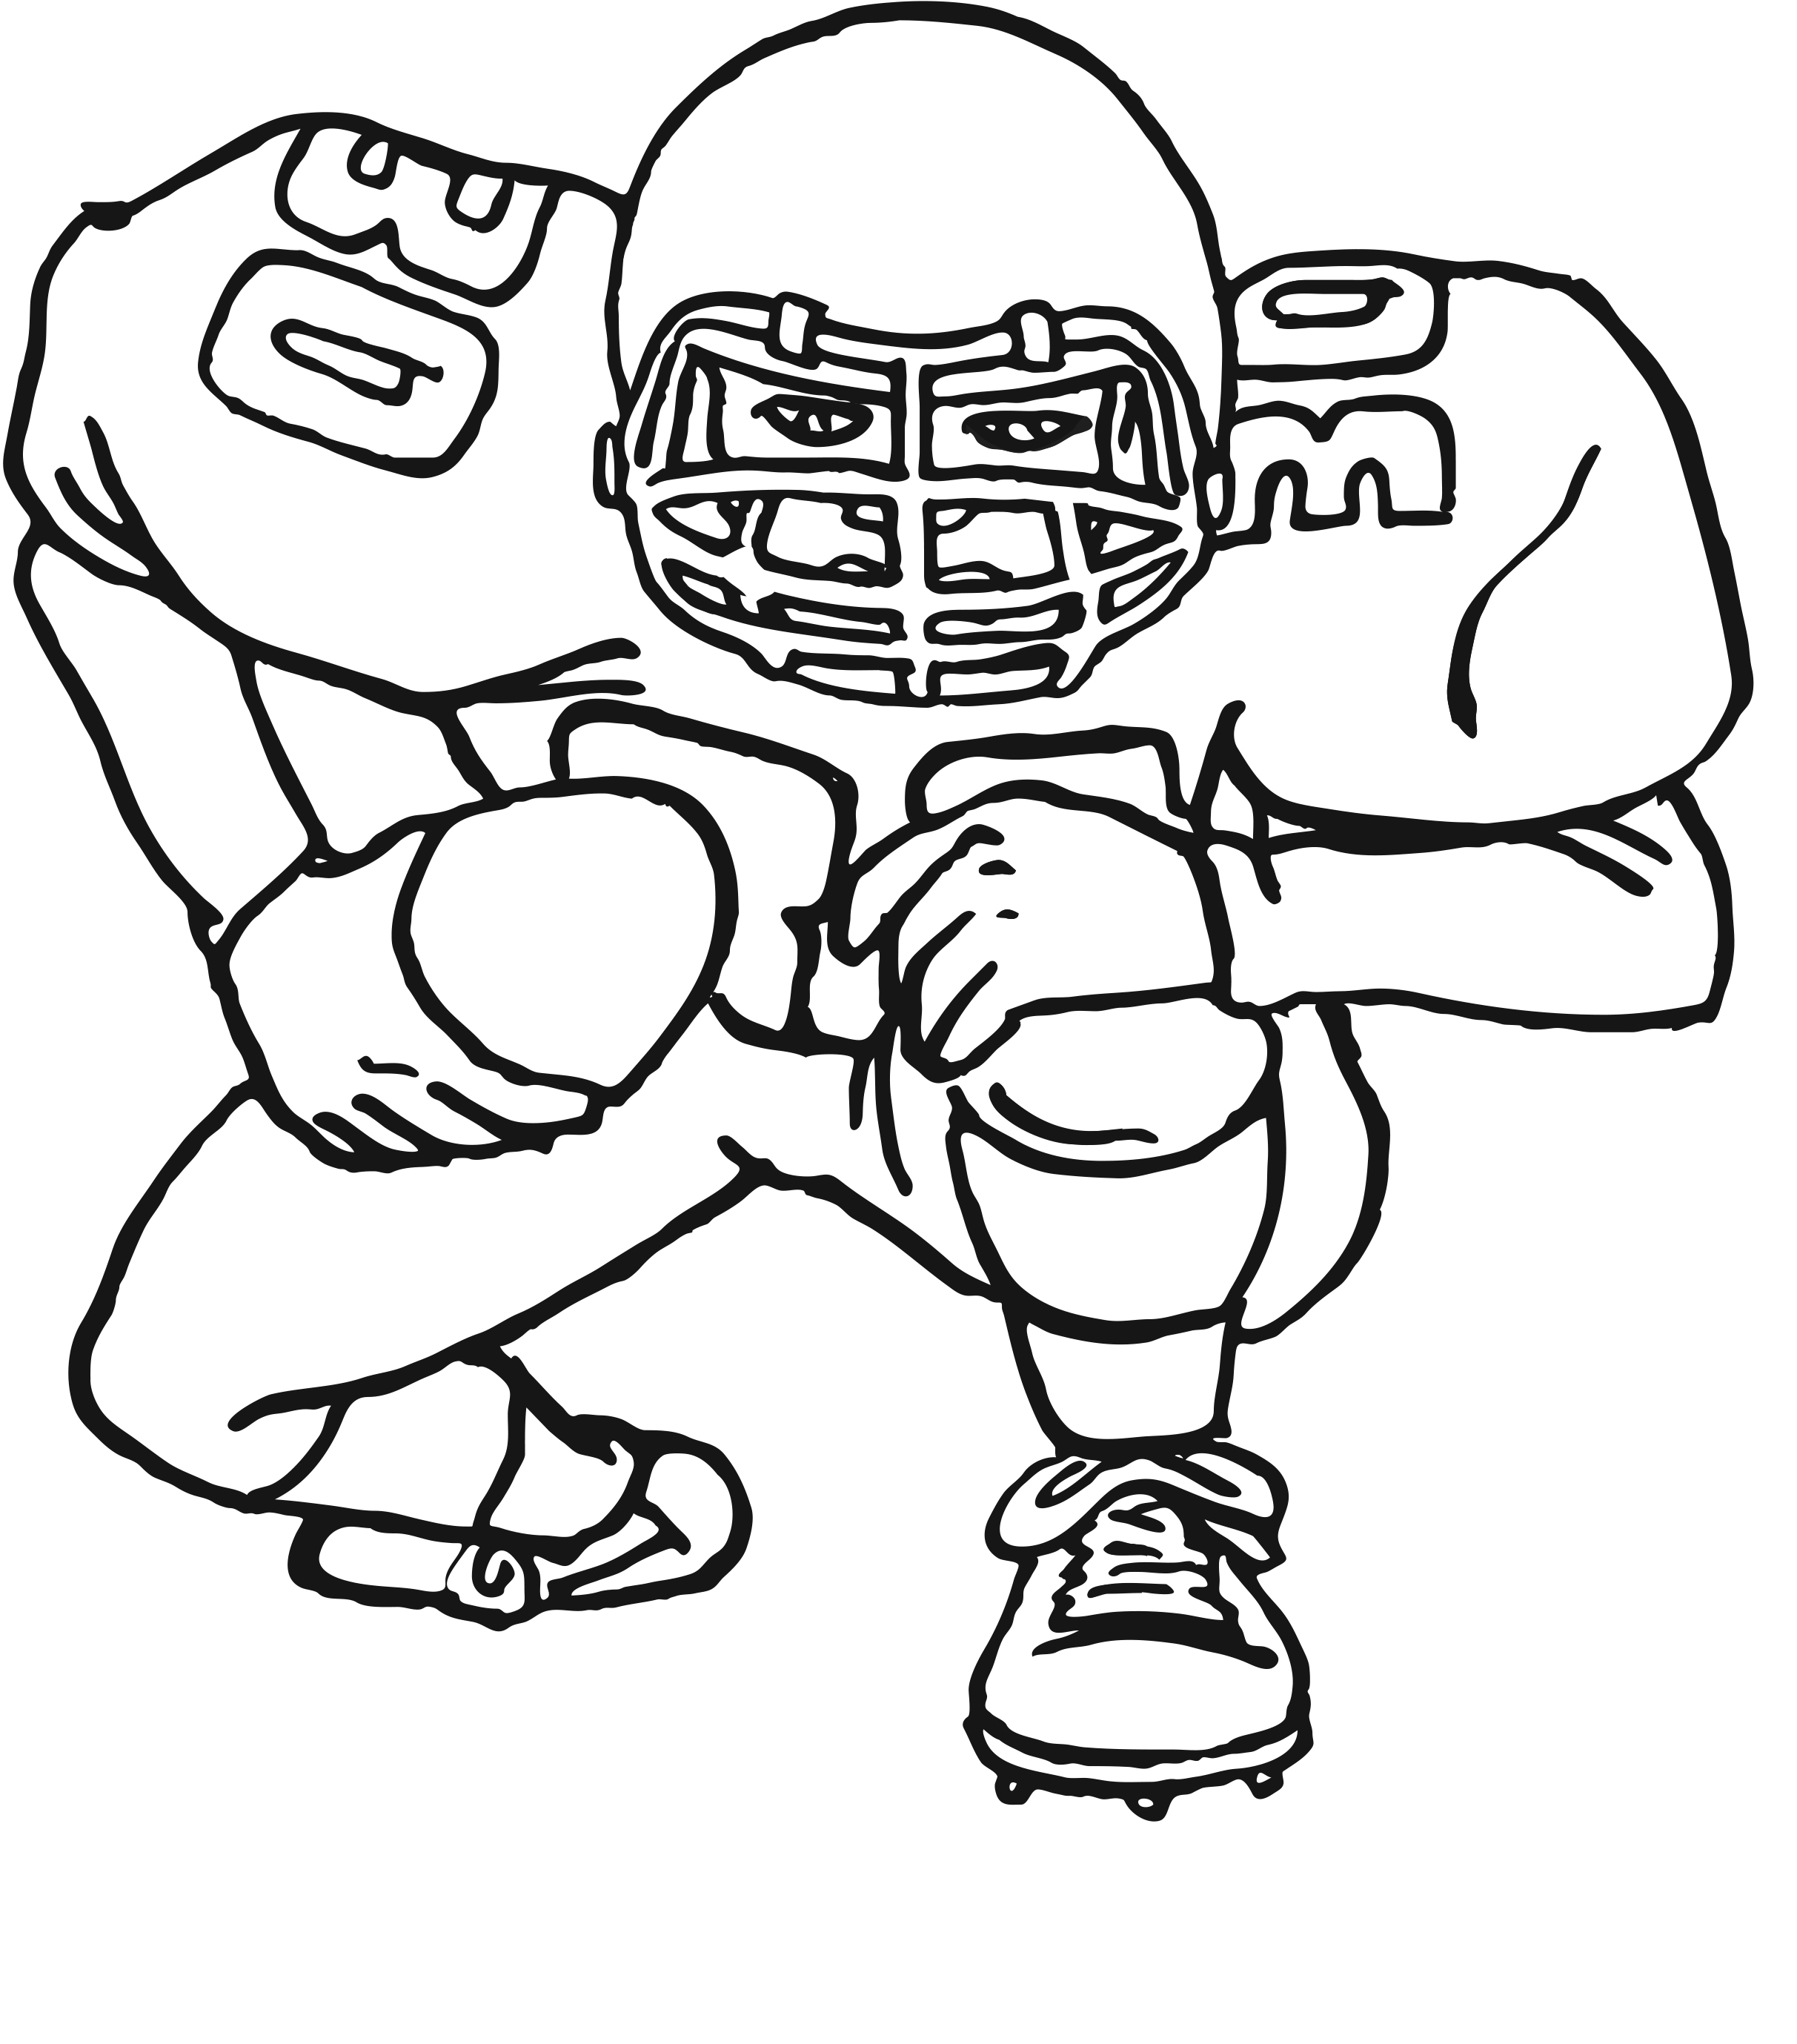 free printable football coloring pages free printable football coloring pages for kids best free pages printable coloring football